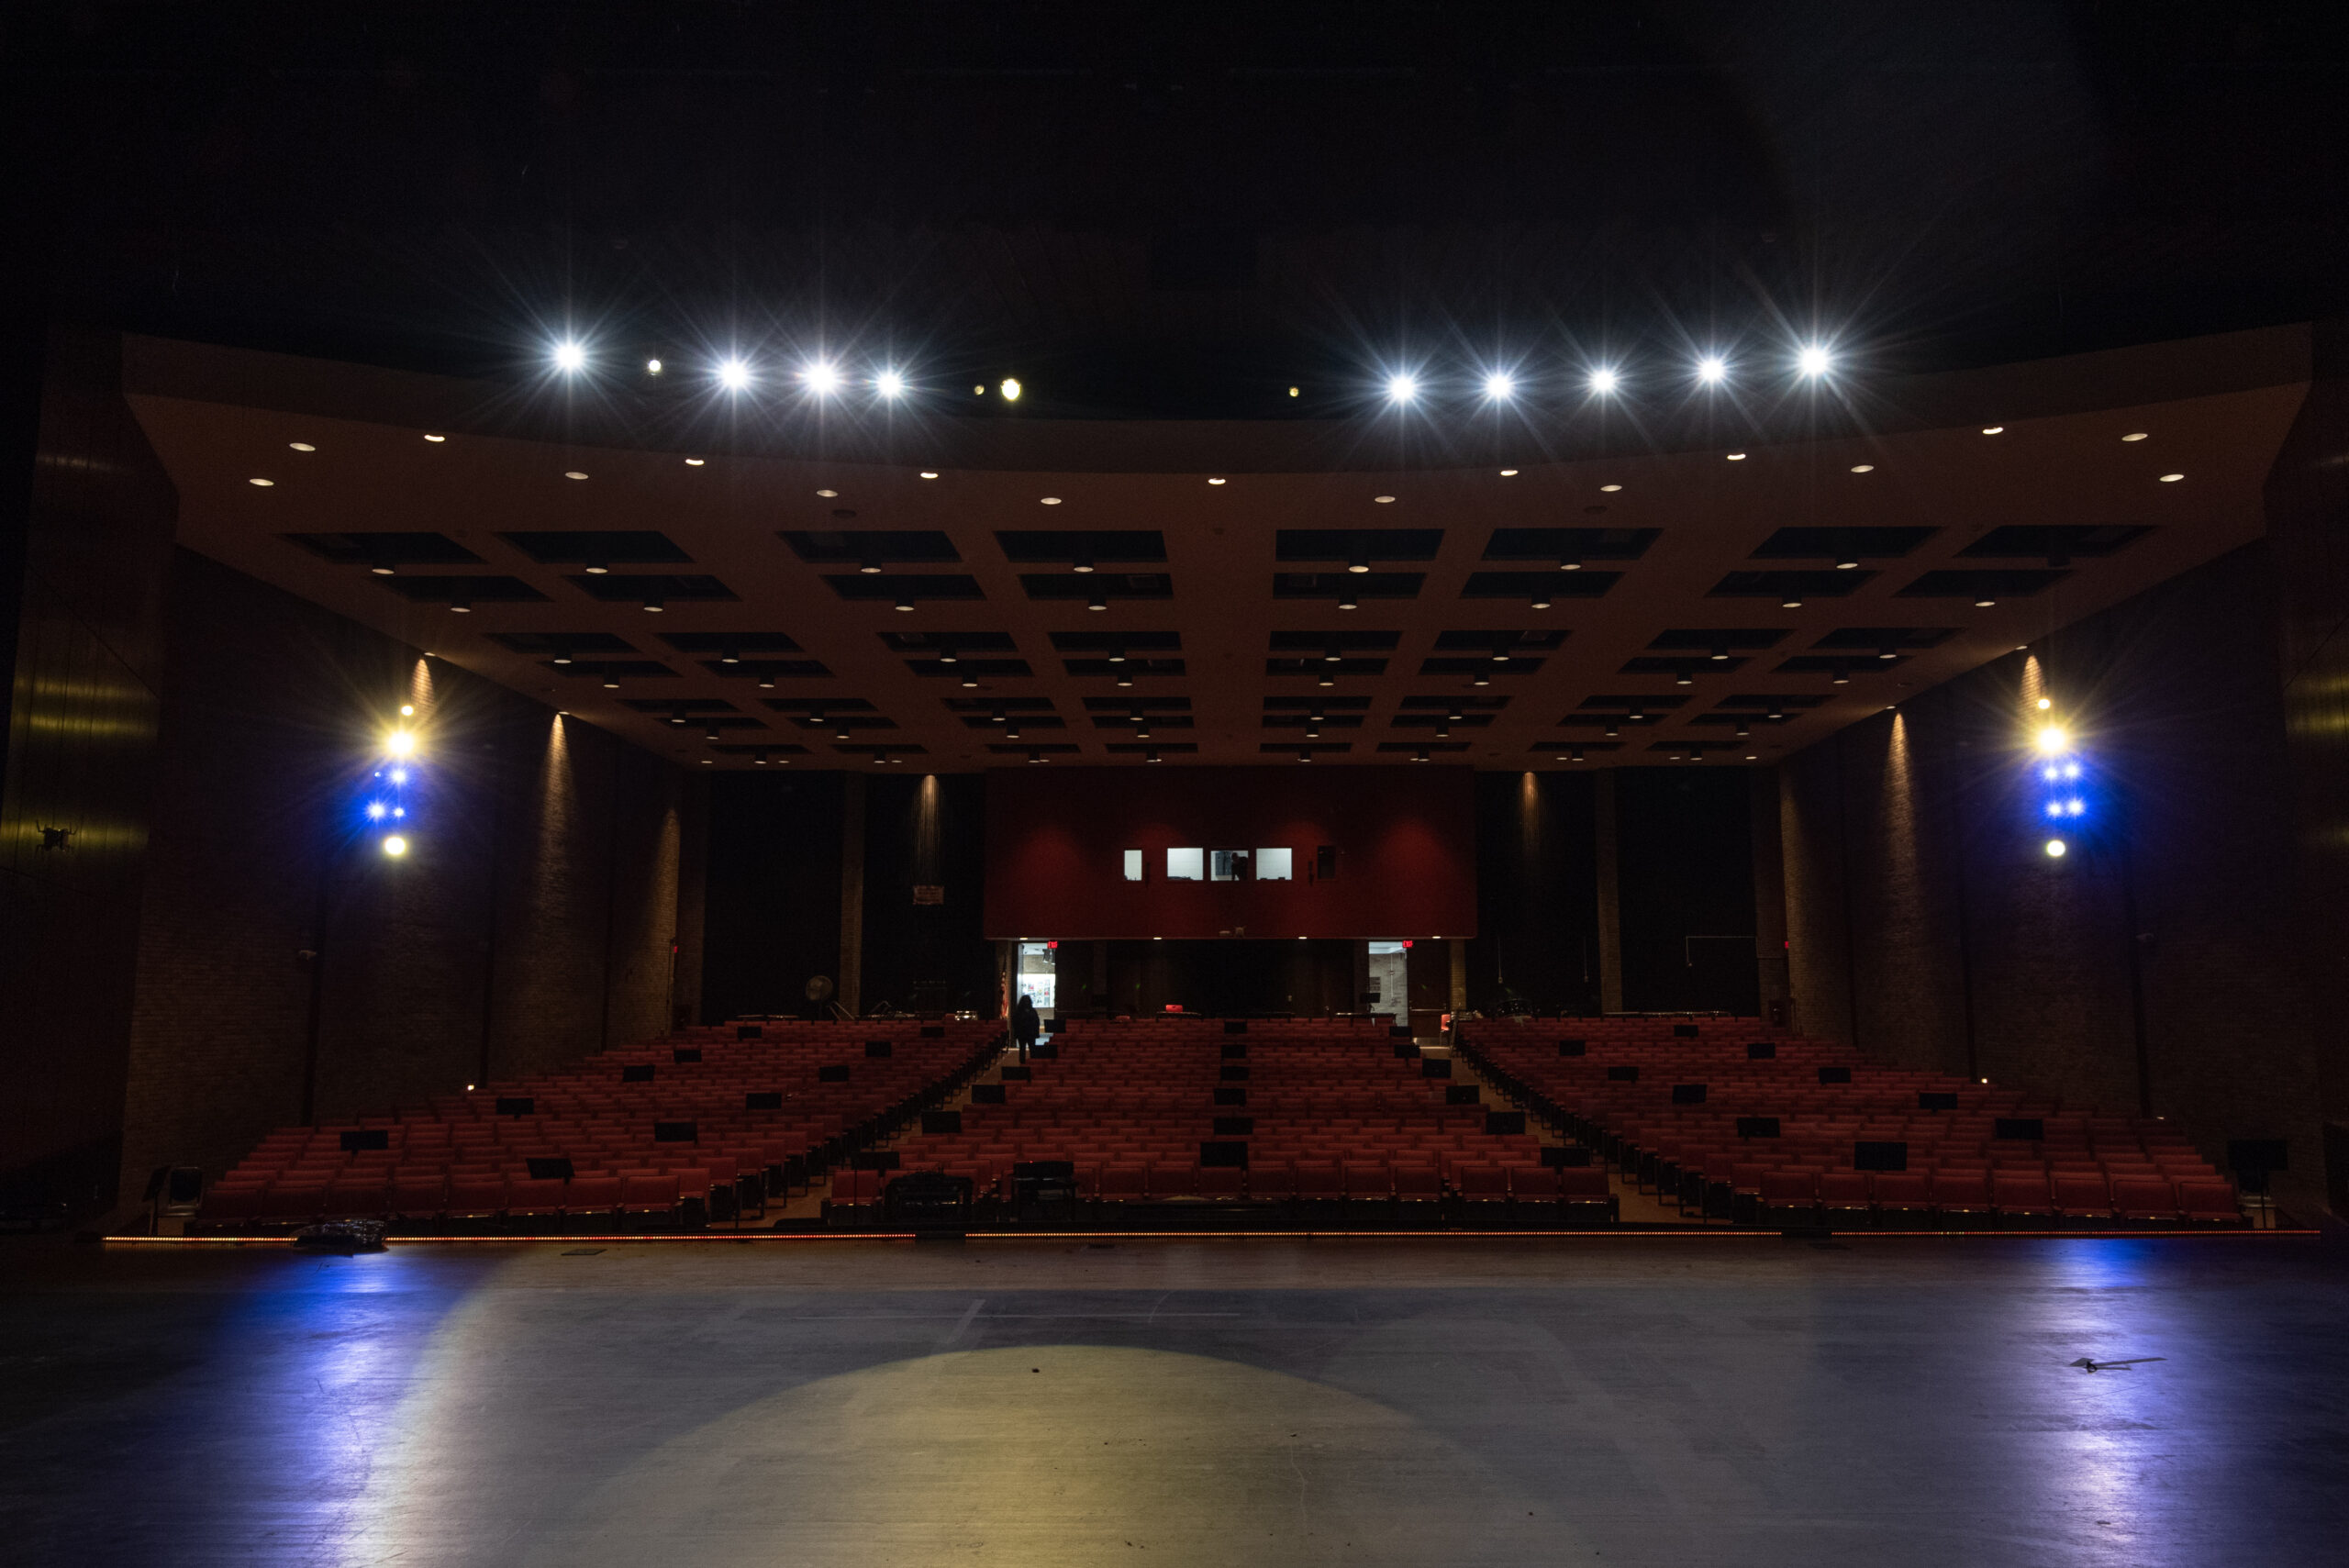 View of lighting system from the stage with upper lights visible and the whole auditorium